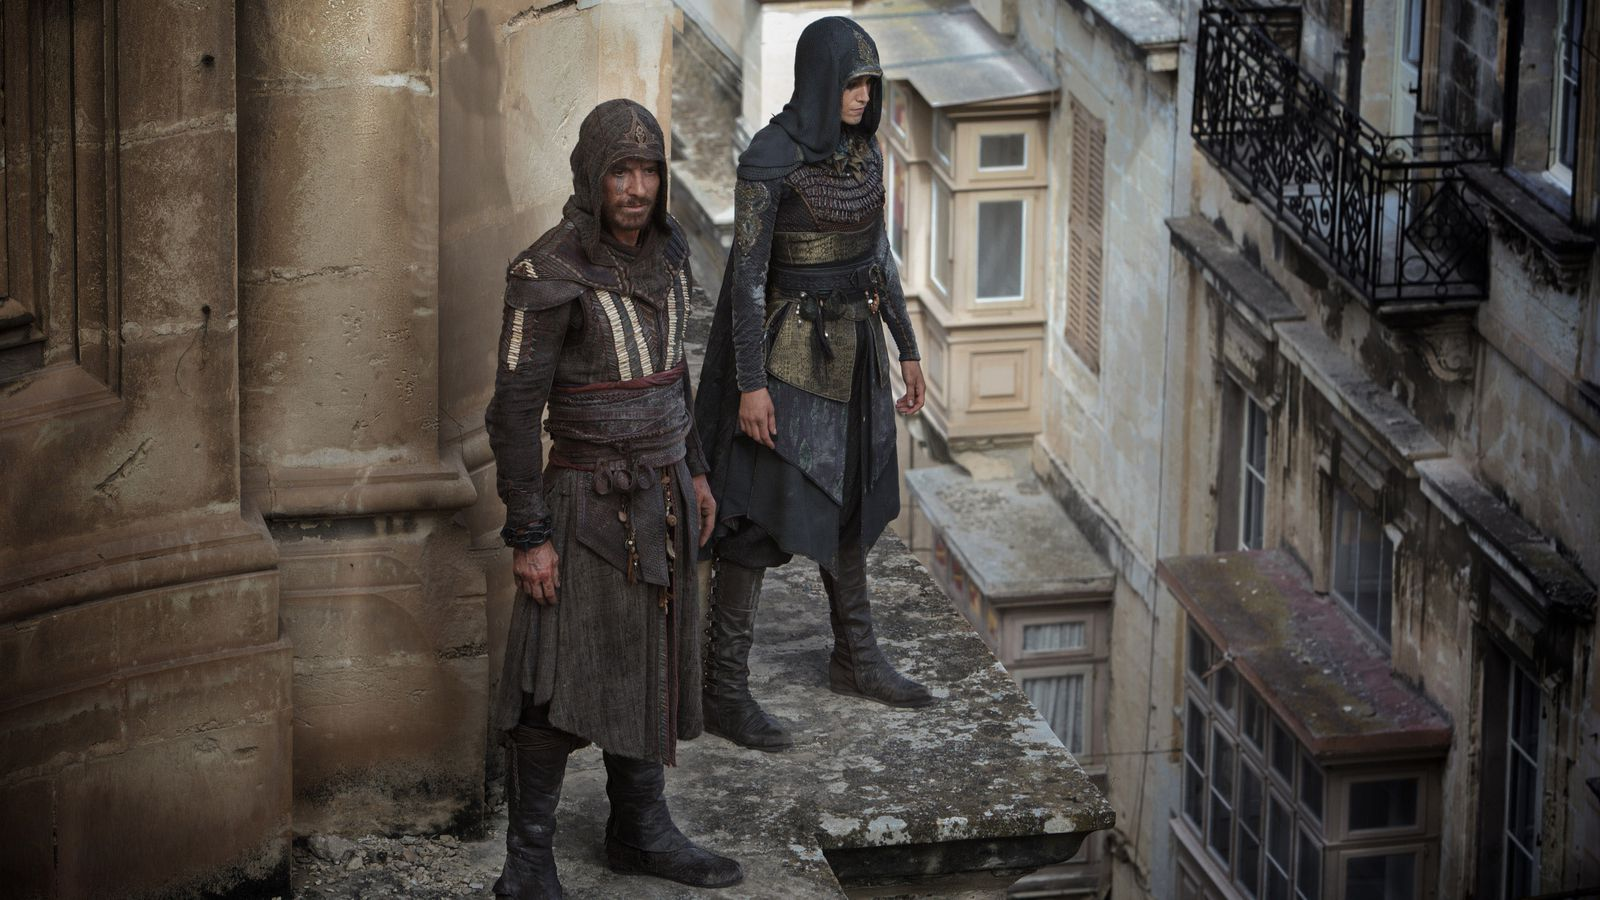 assassins creed full movie hindi dubbed free download